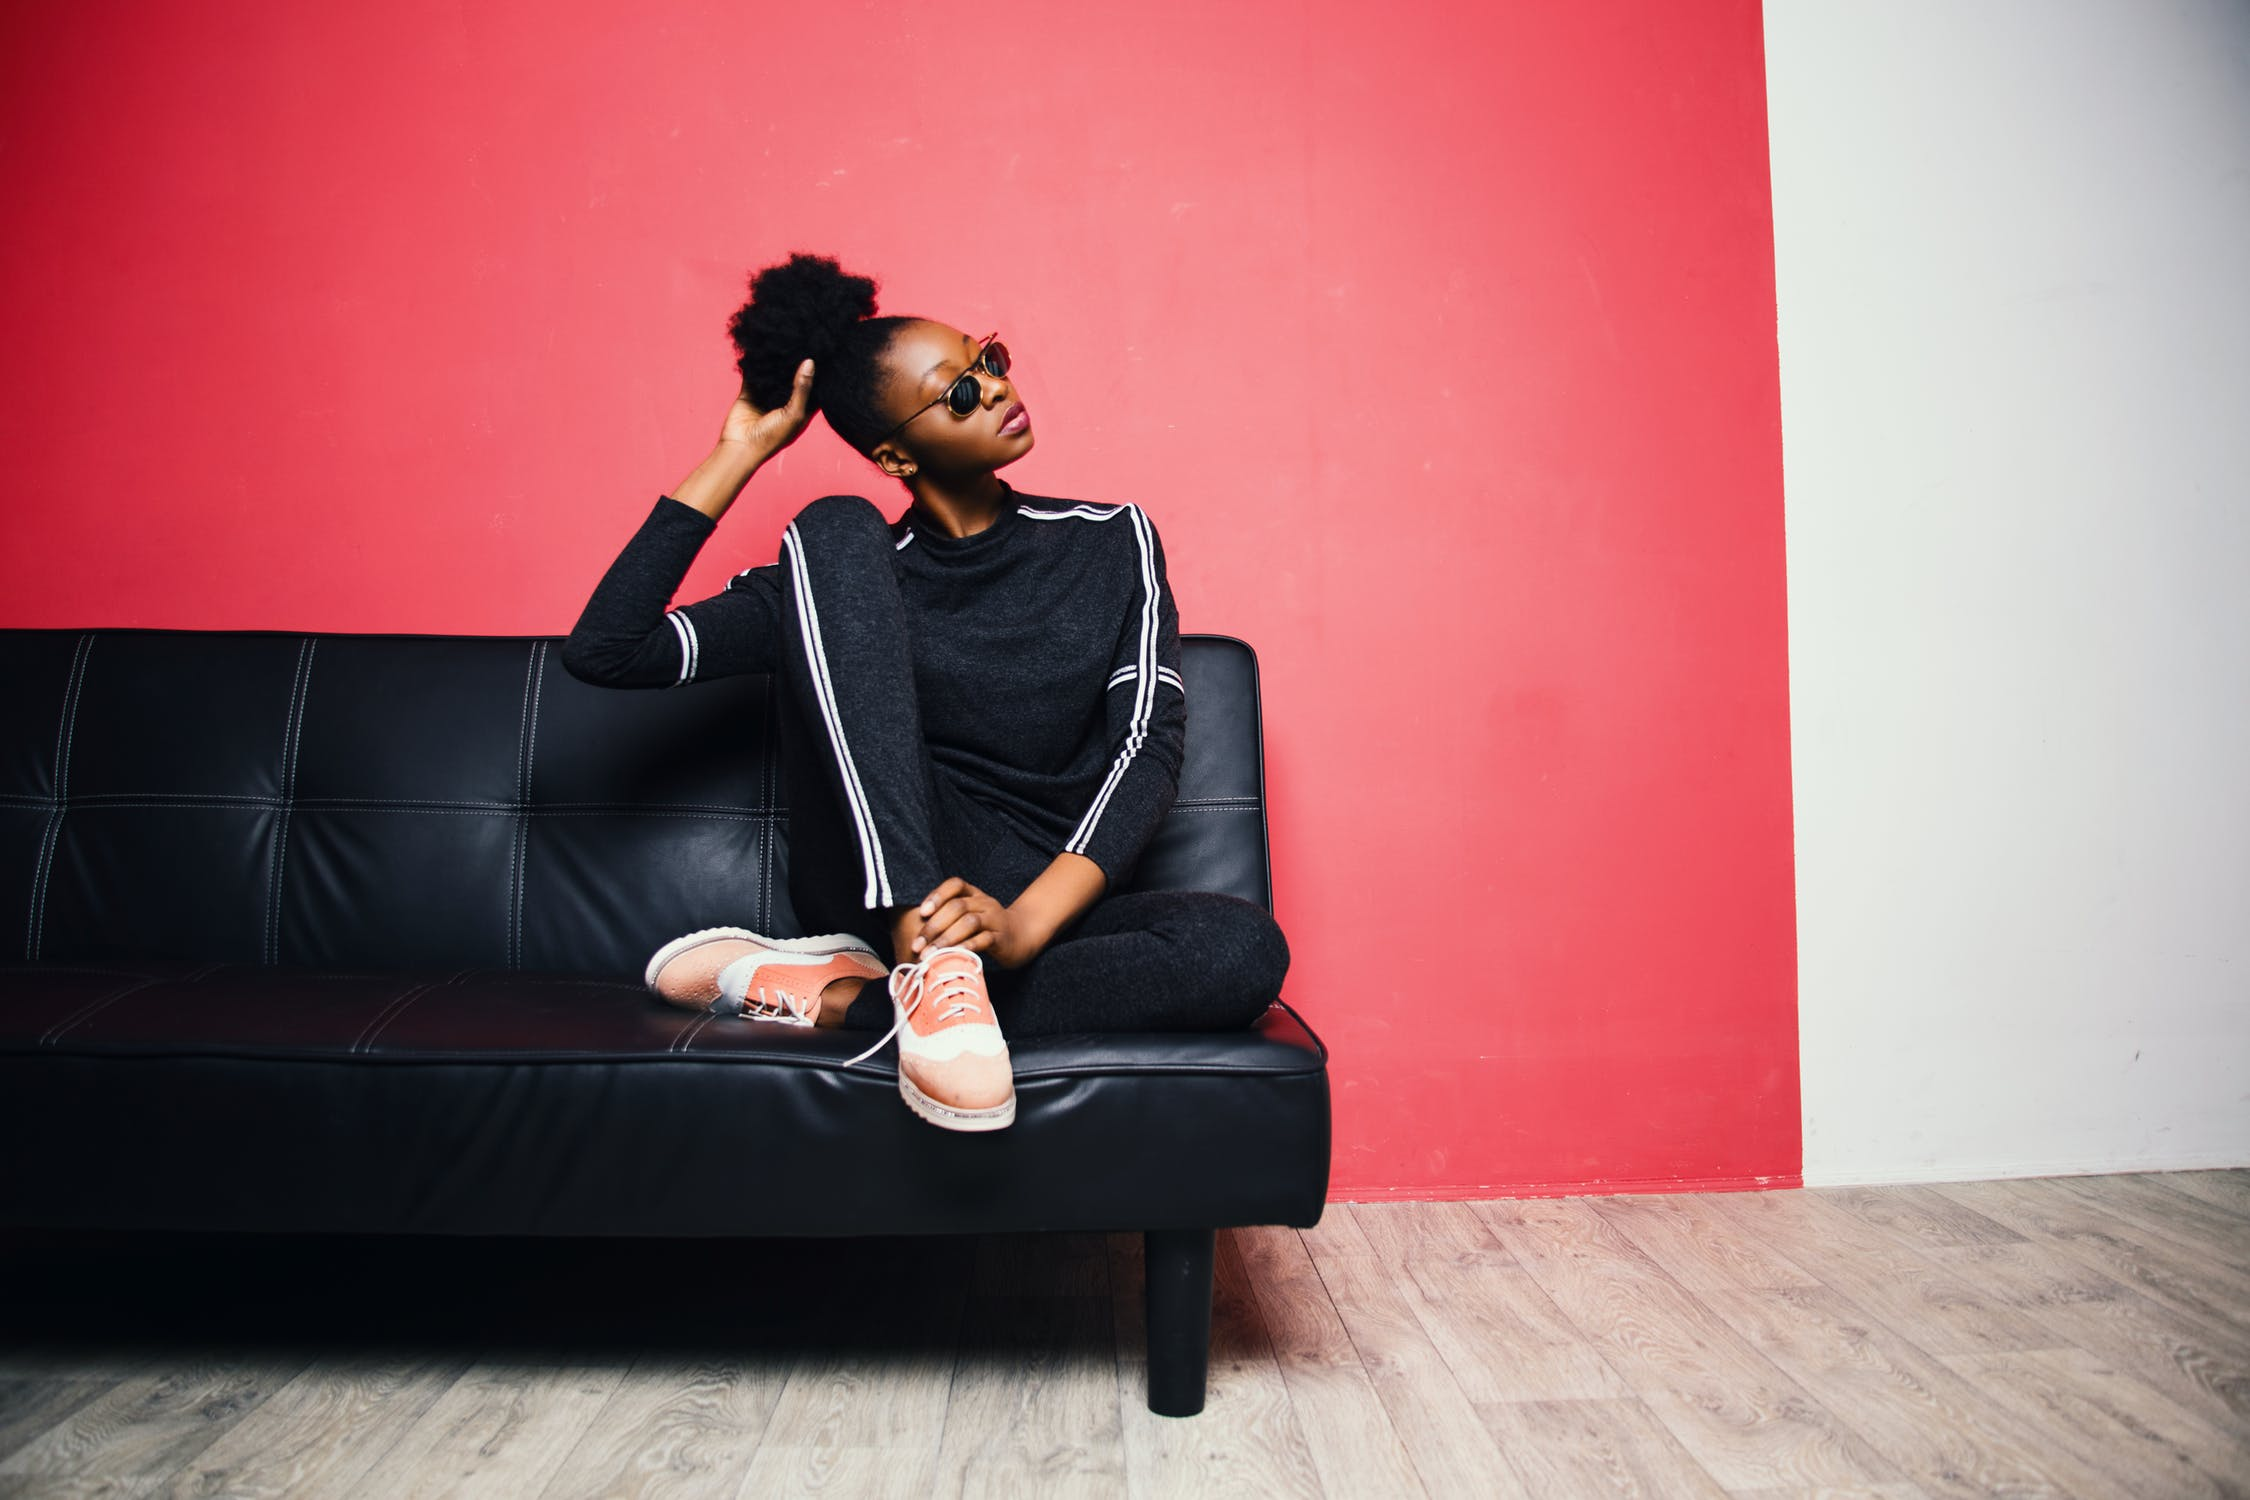 Dealing with uncertainty expectations black woman lifestyle faith blog